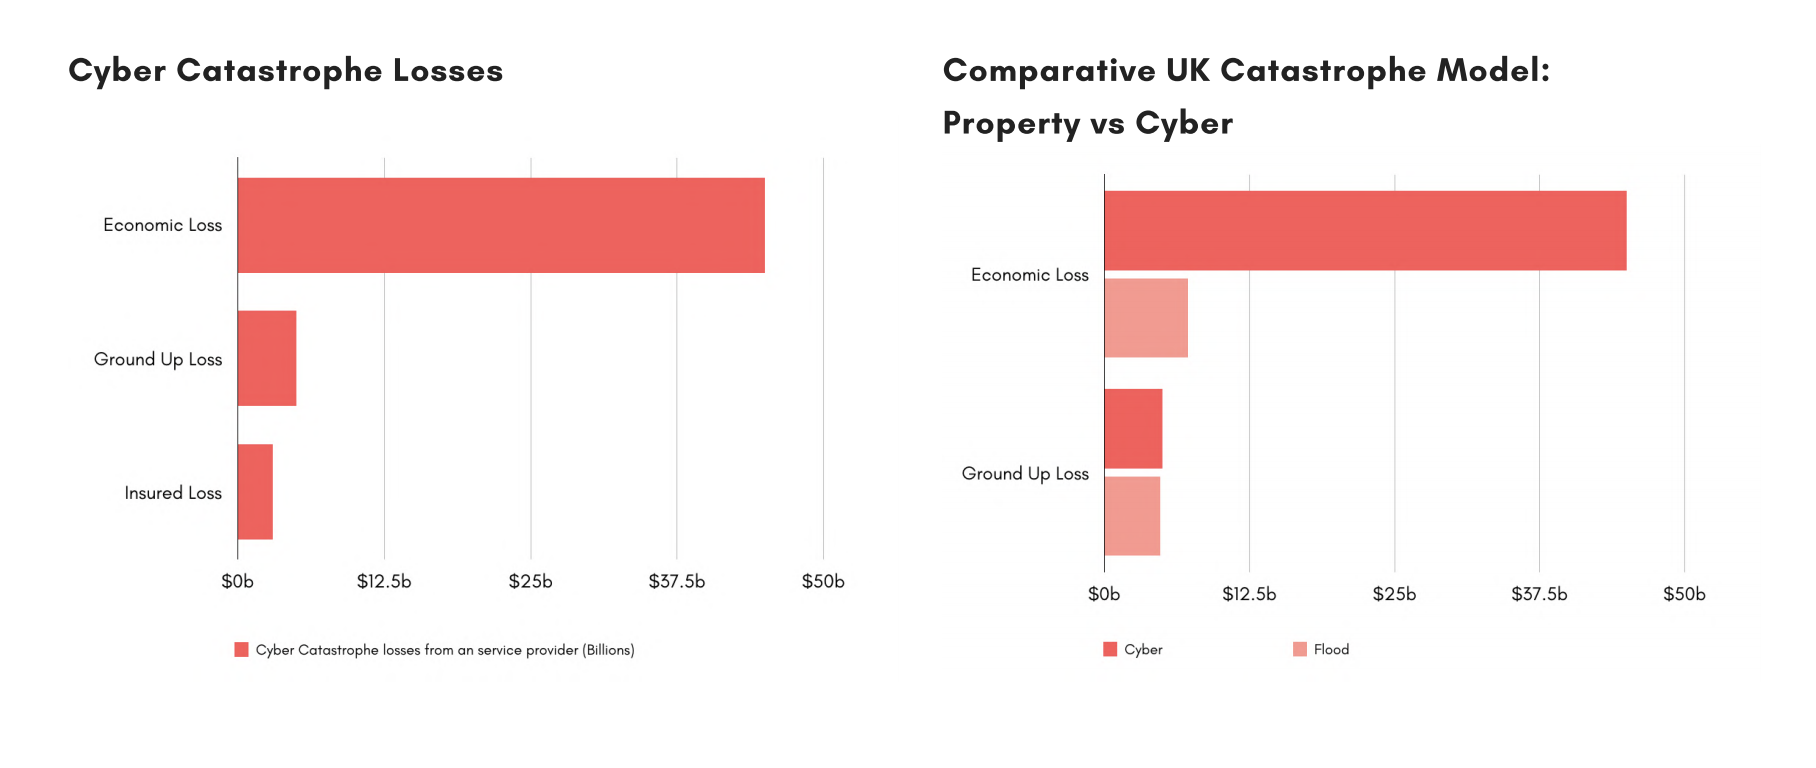 Cyber Catastrophe Losses